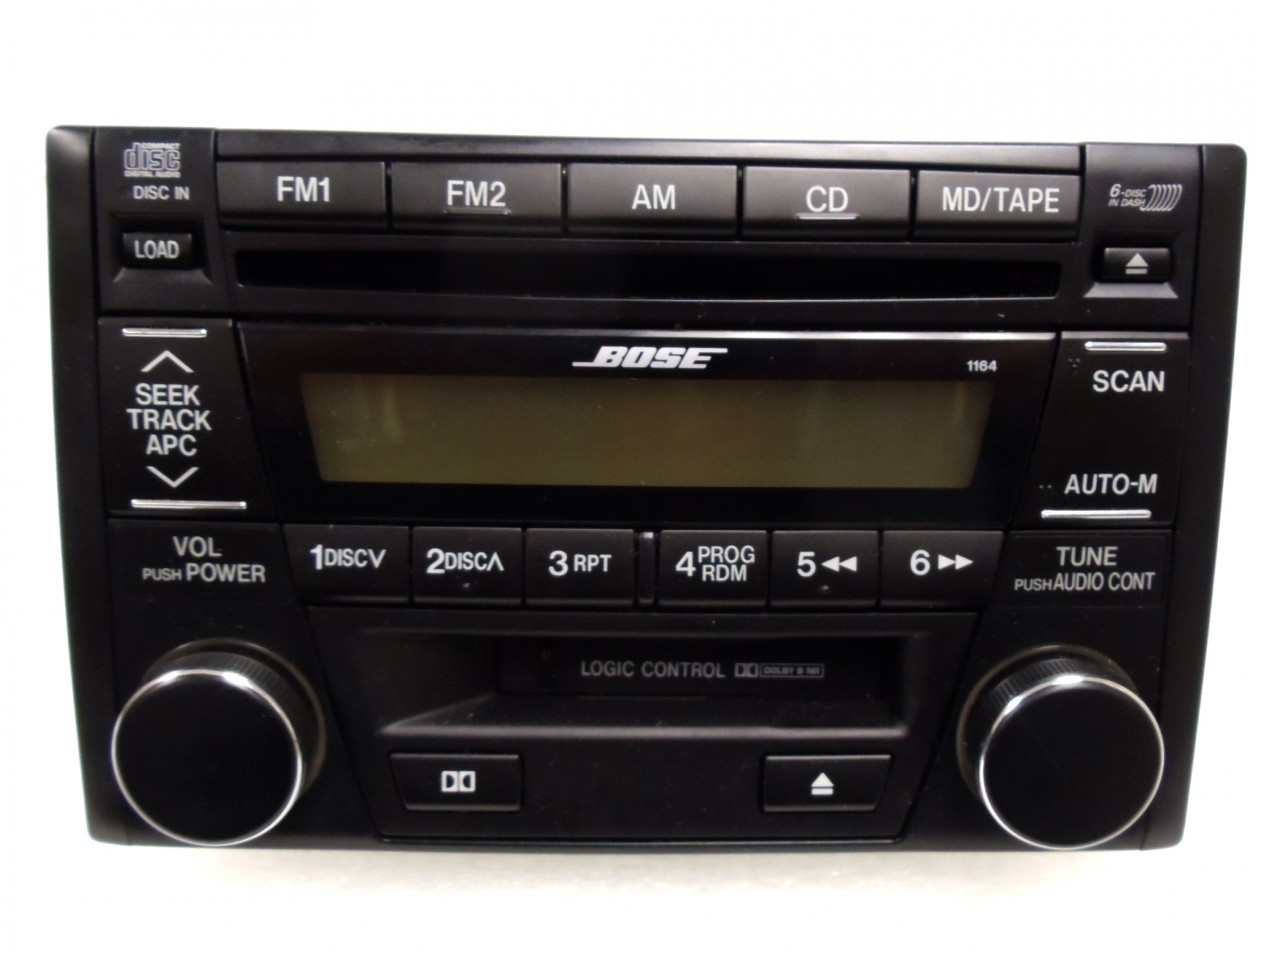 Mazda Millenia 626 Bose Radio Stereo 6 Disc Changer Cd Player 1164 2001 2002 01 02